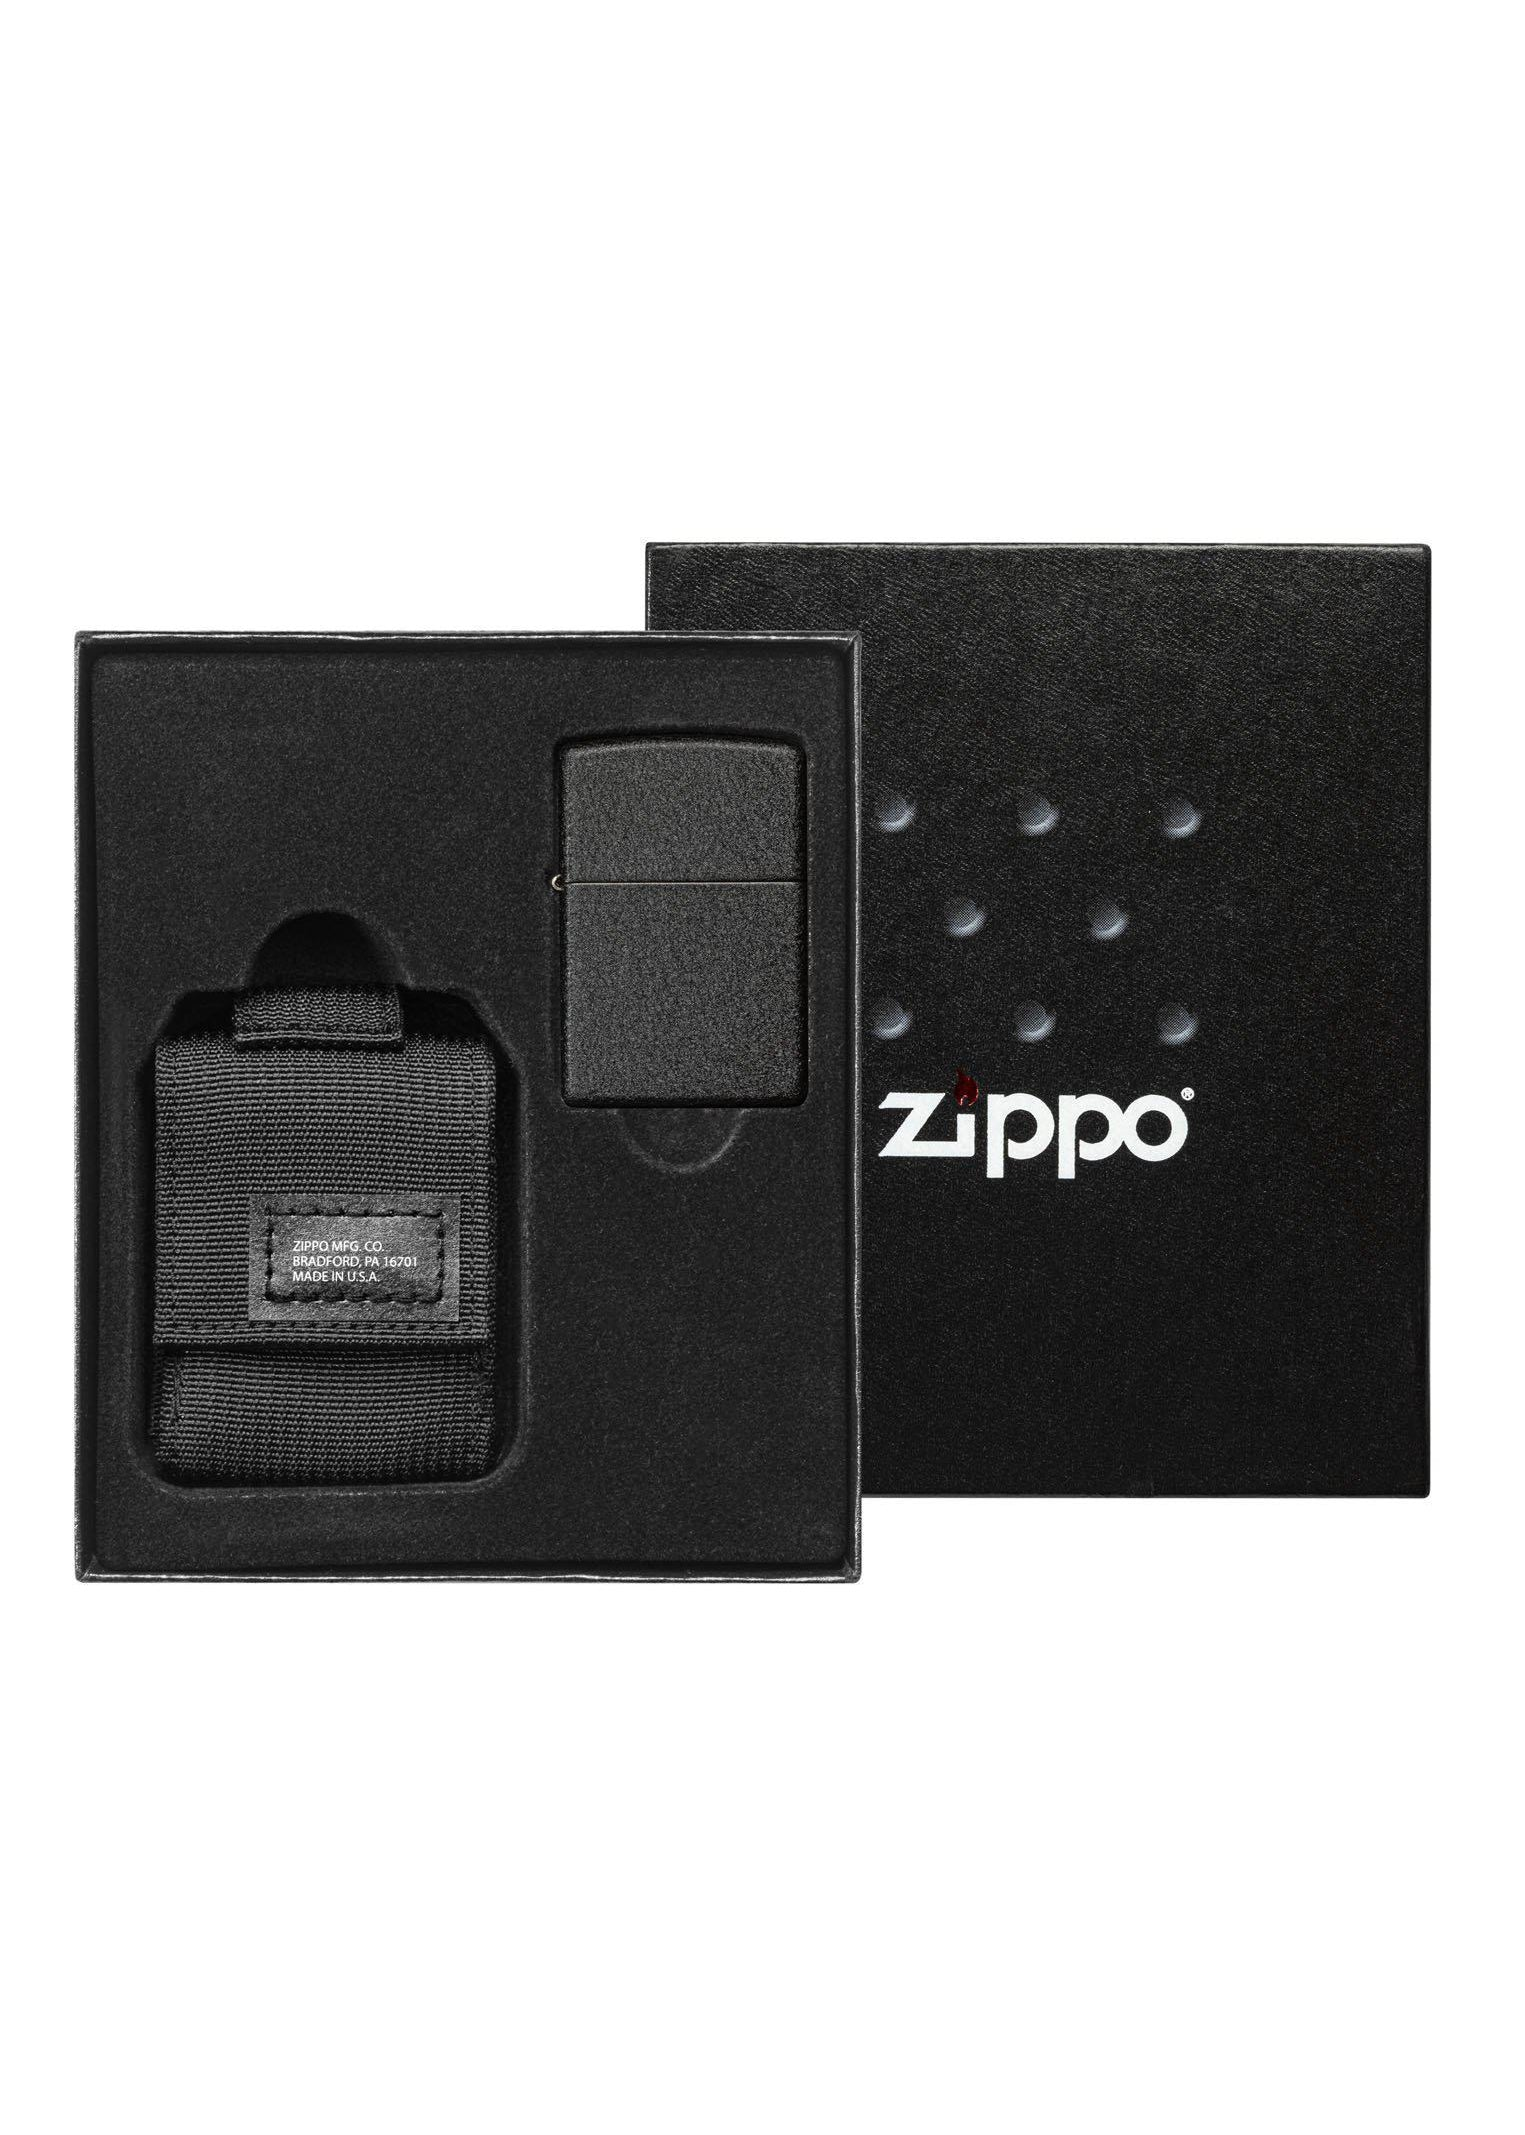 Zippo Black Crackle Lighter and Black MOLLE Pouch - 49402